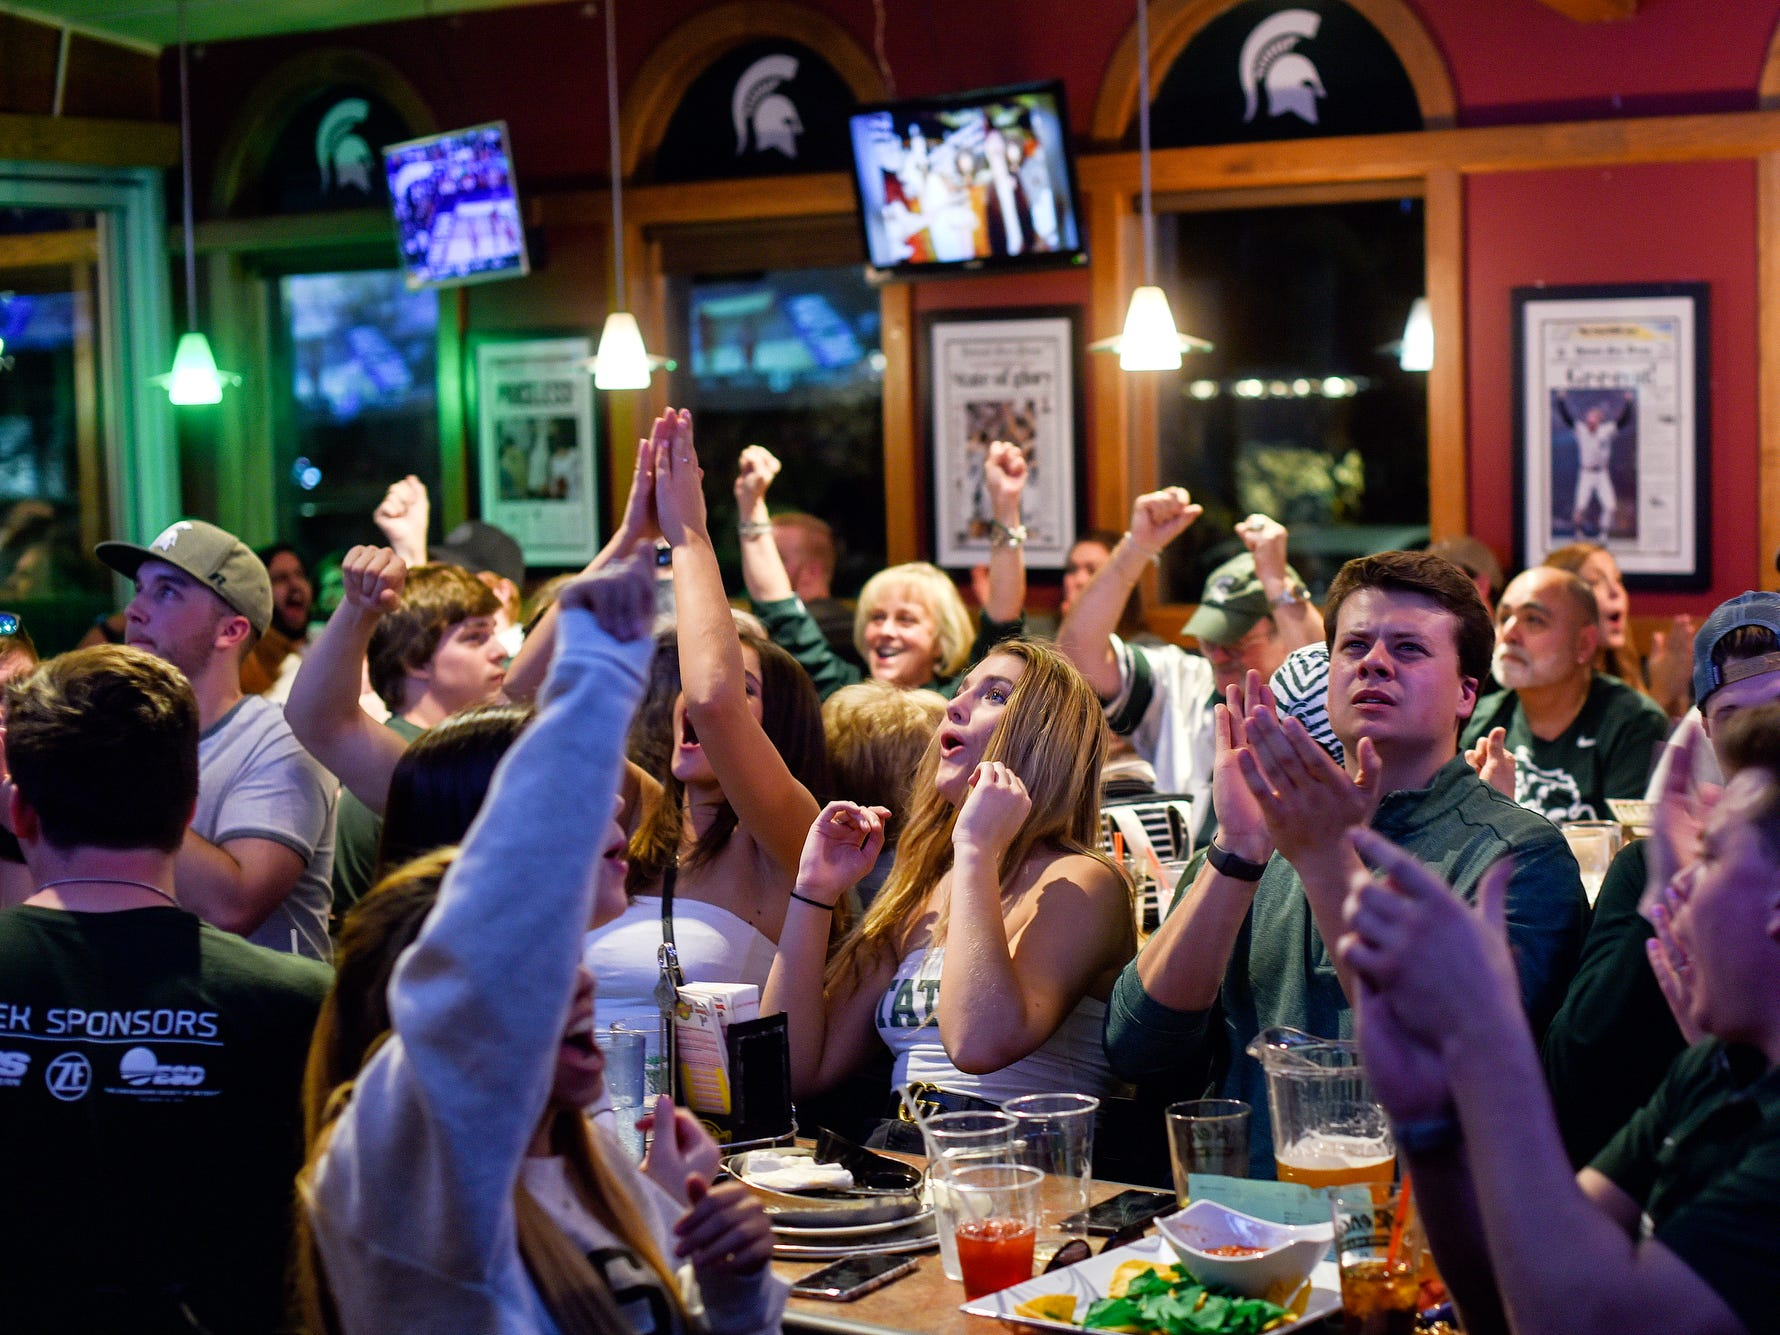 Fans react to a MSU score during the first half the Michigan State Spartans' Final Four game against Texas Tech on Saturday, April 6, 2019, at Reno's East in East Lansing.